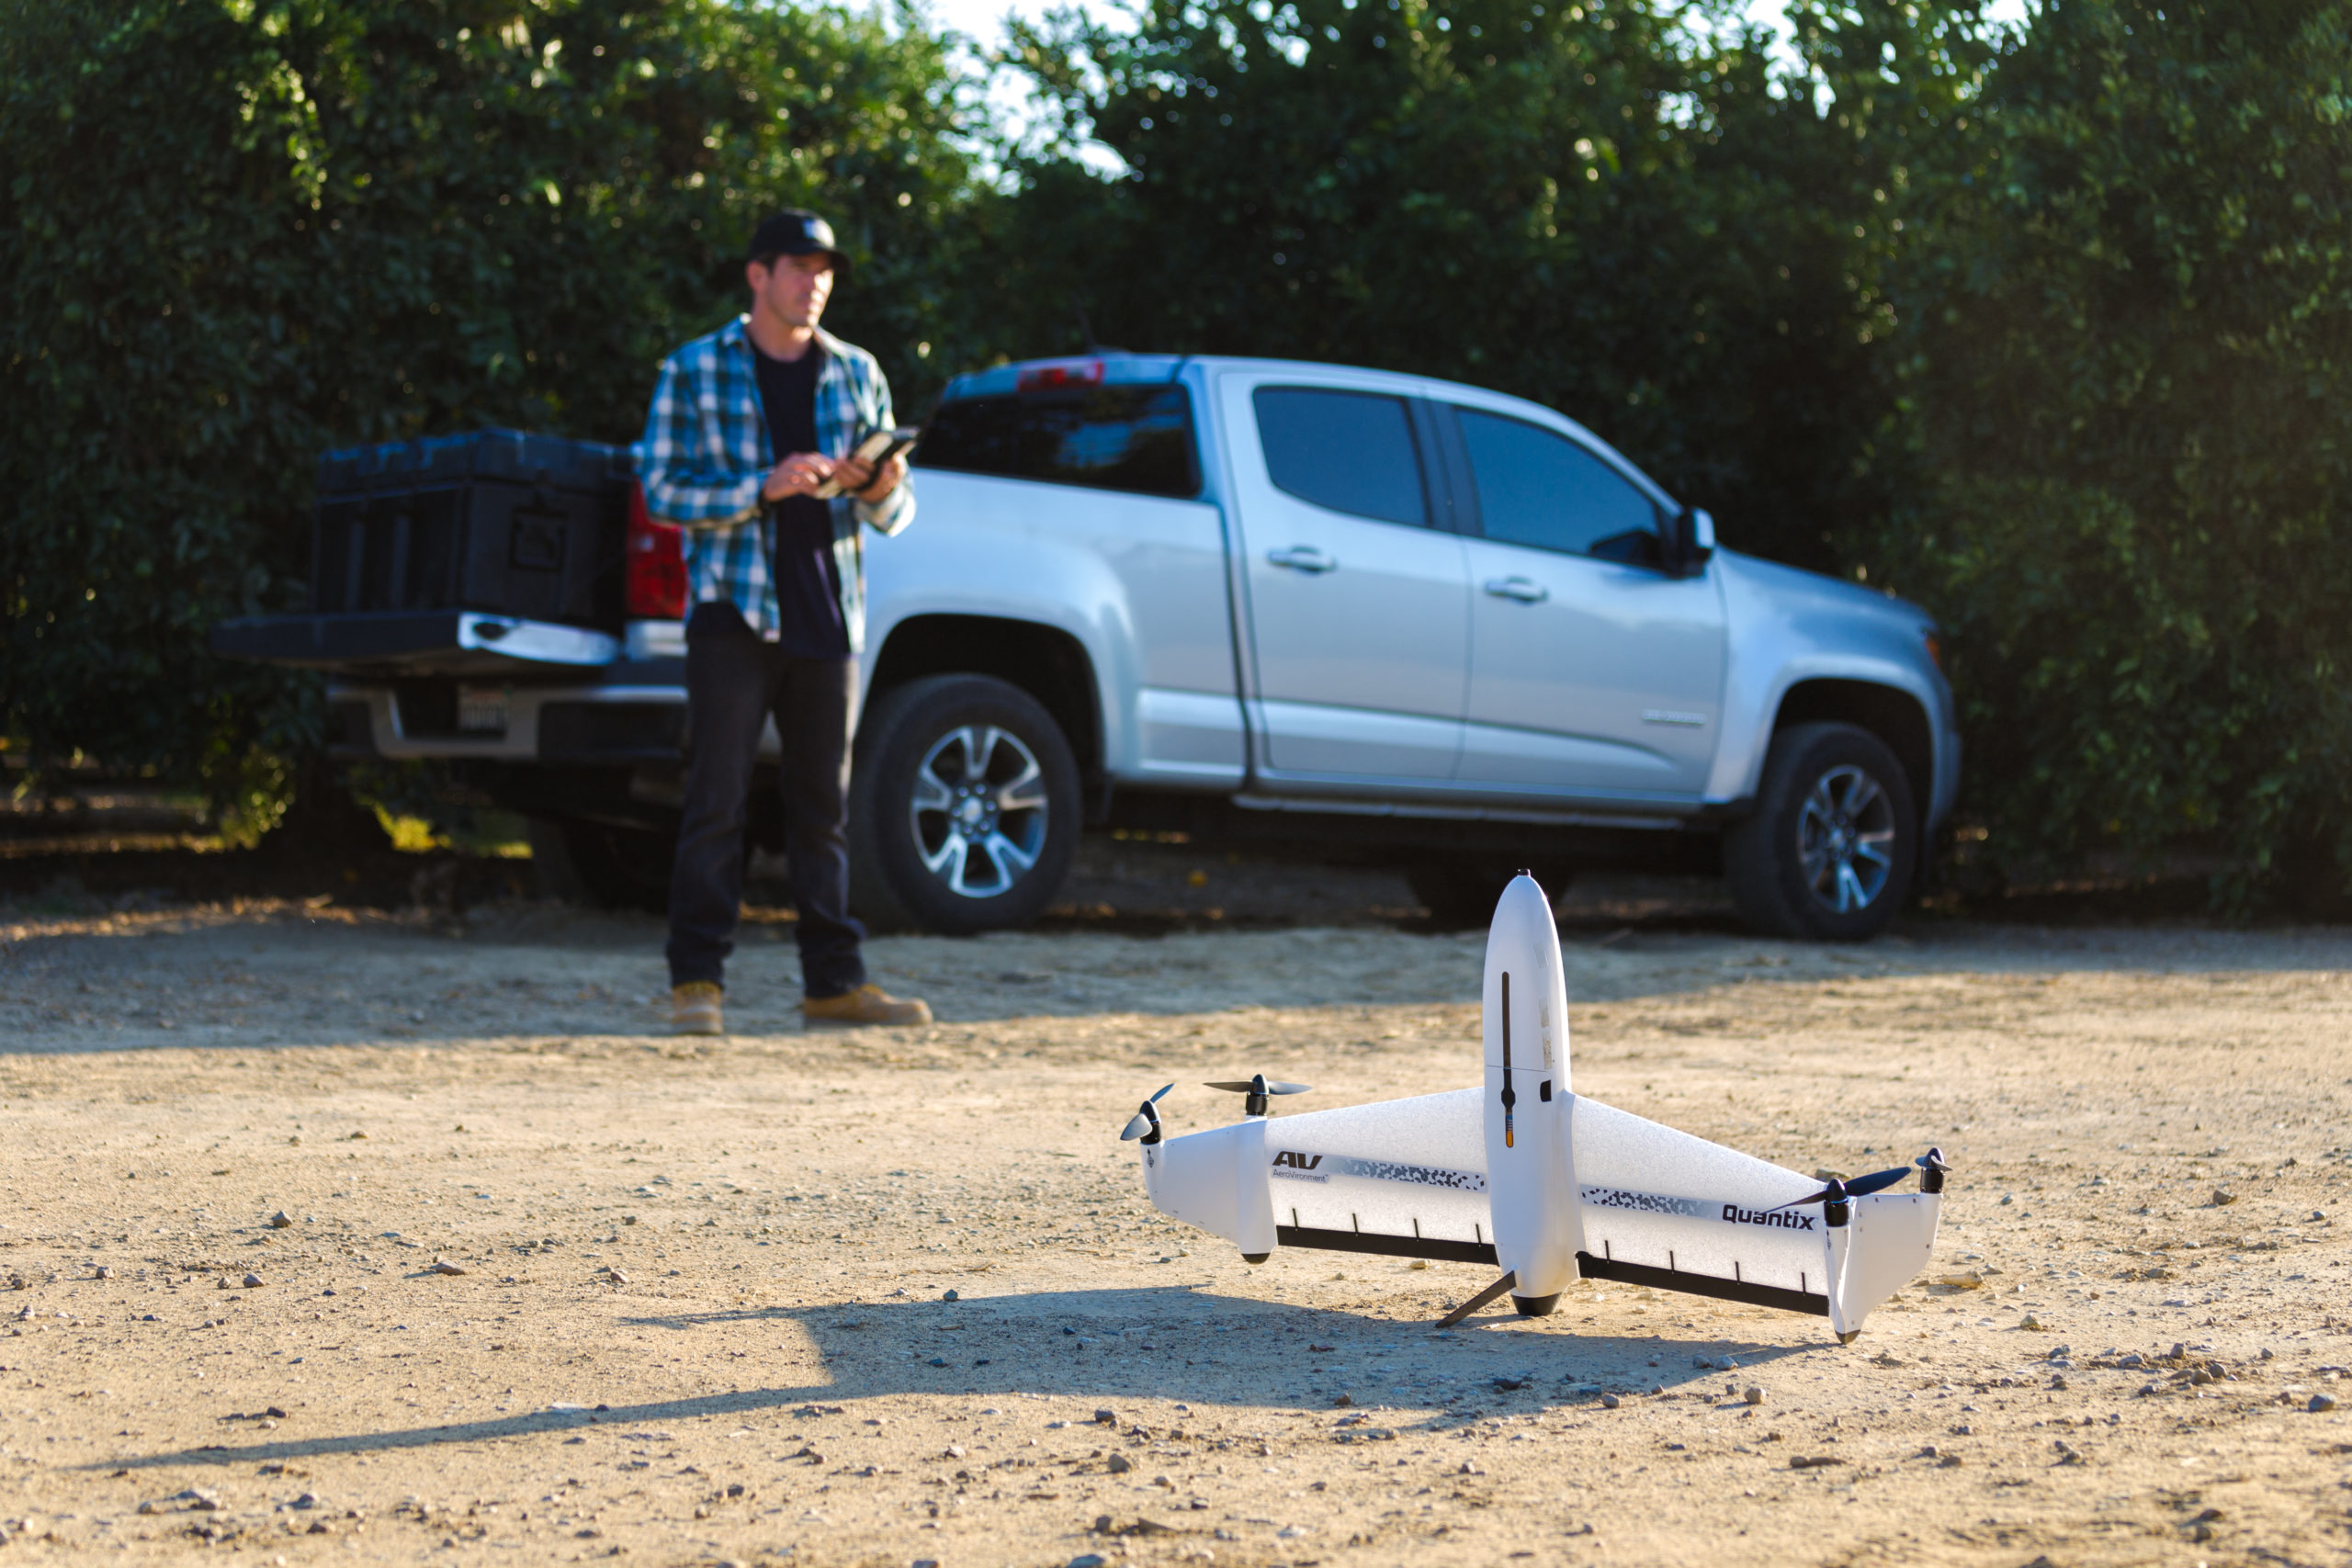 Quantix Drone for Agriculture Mapping